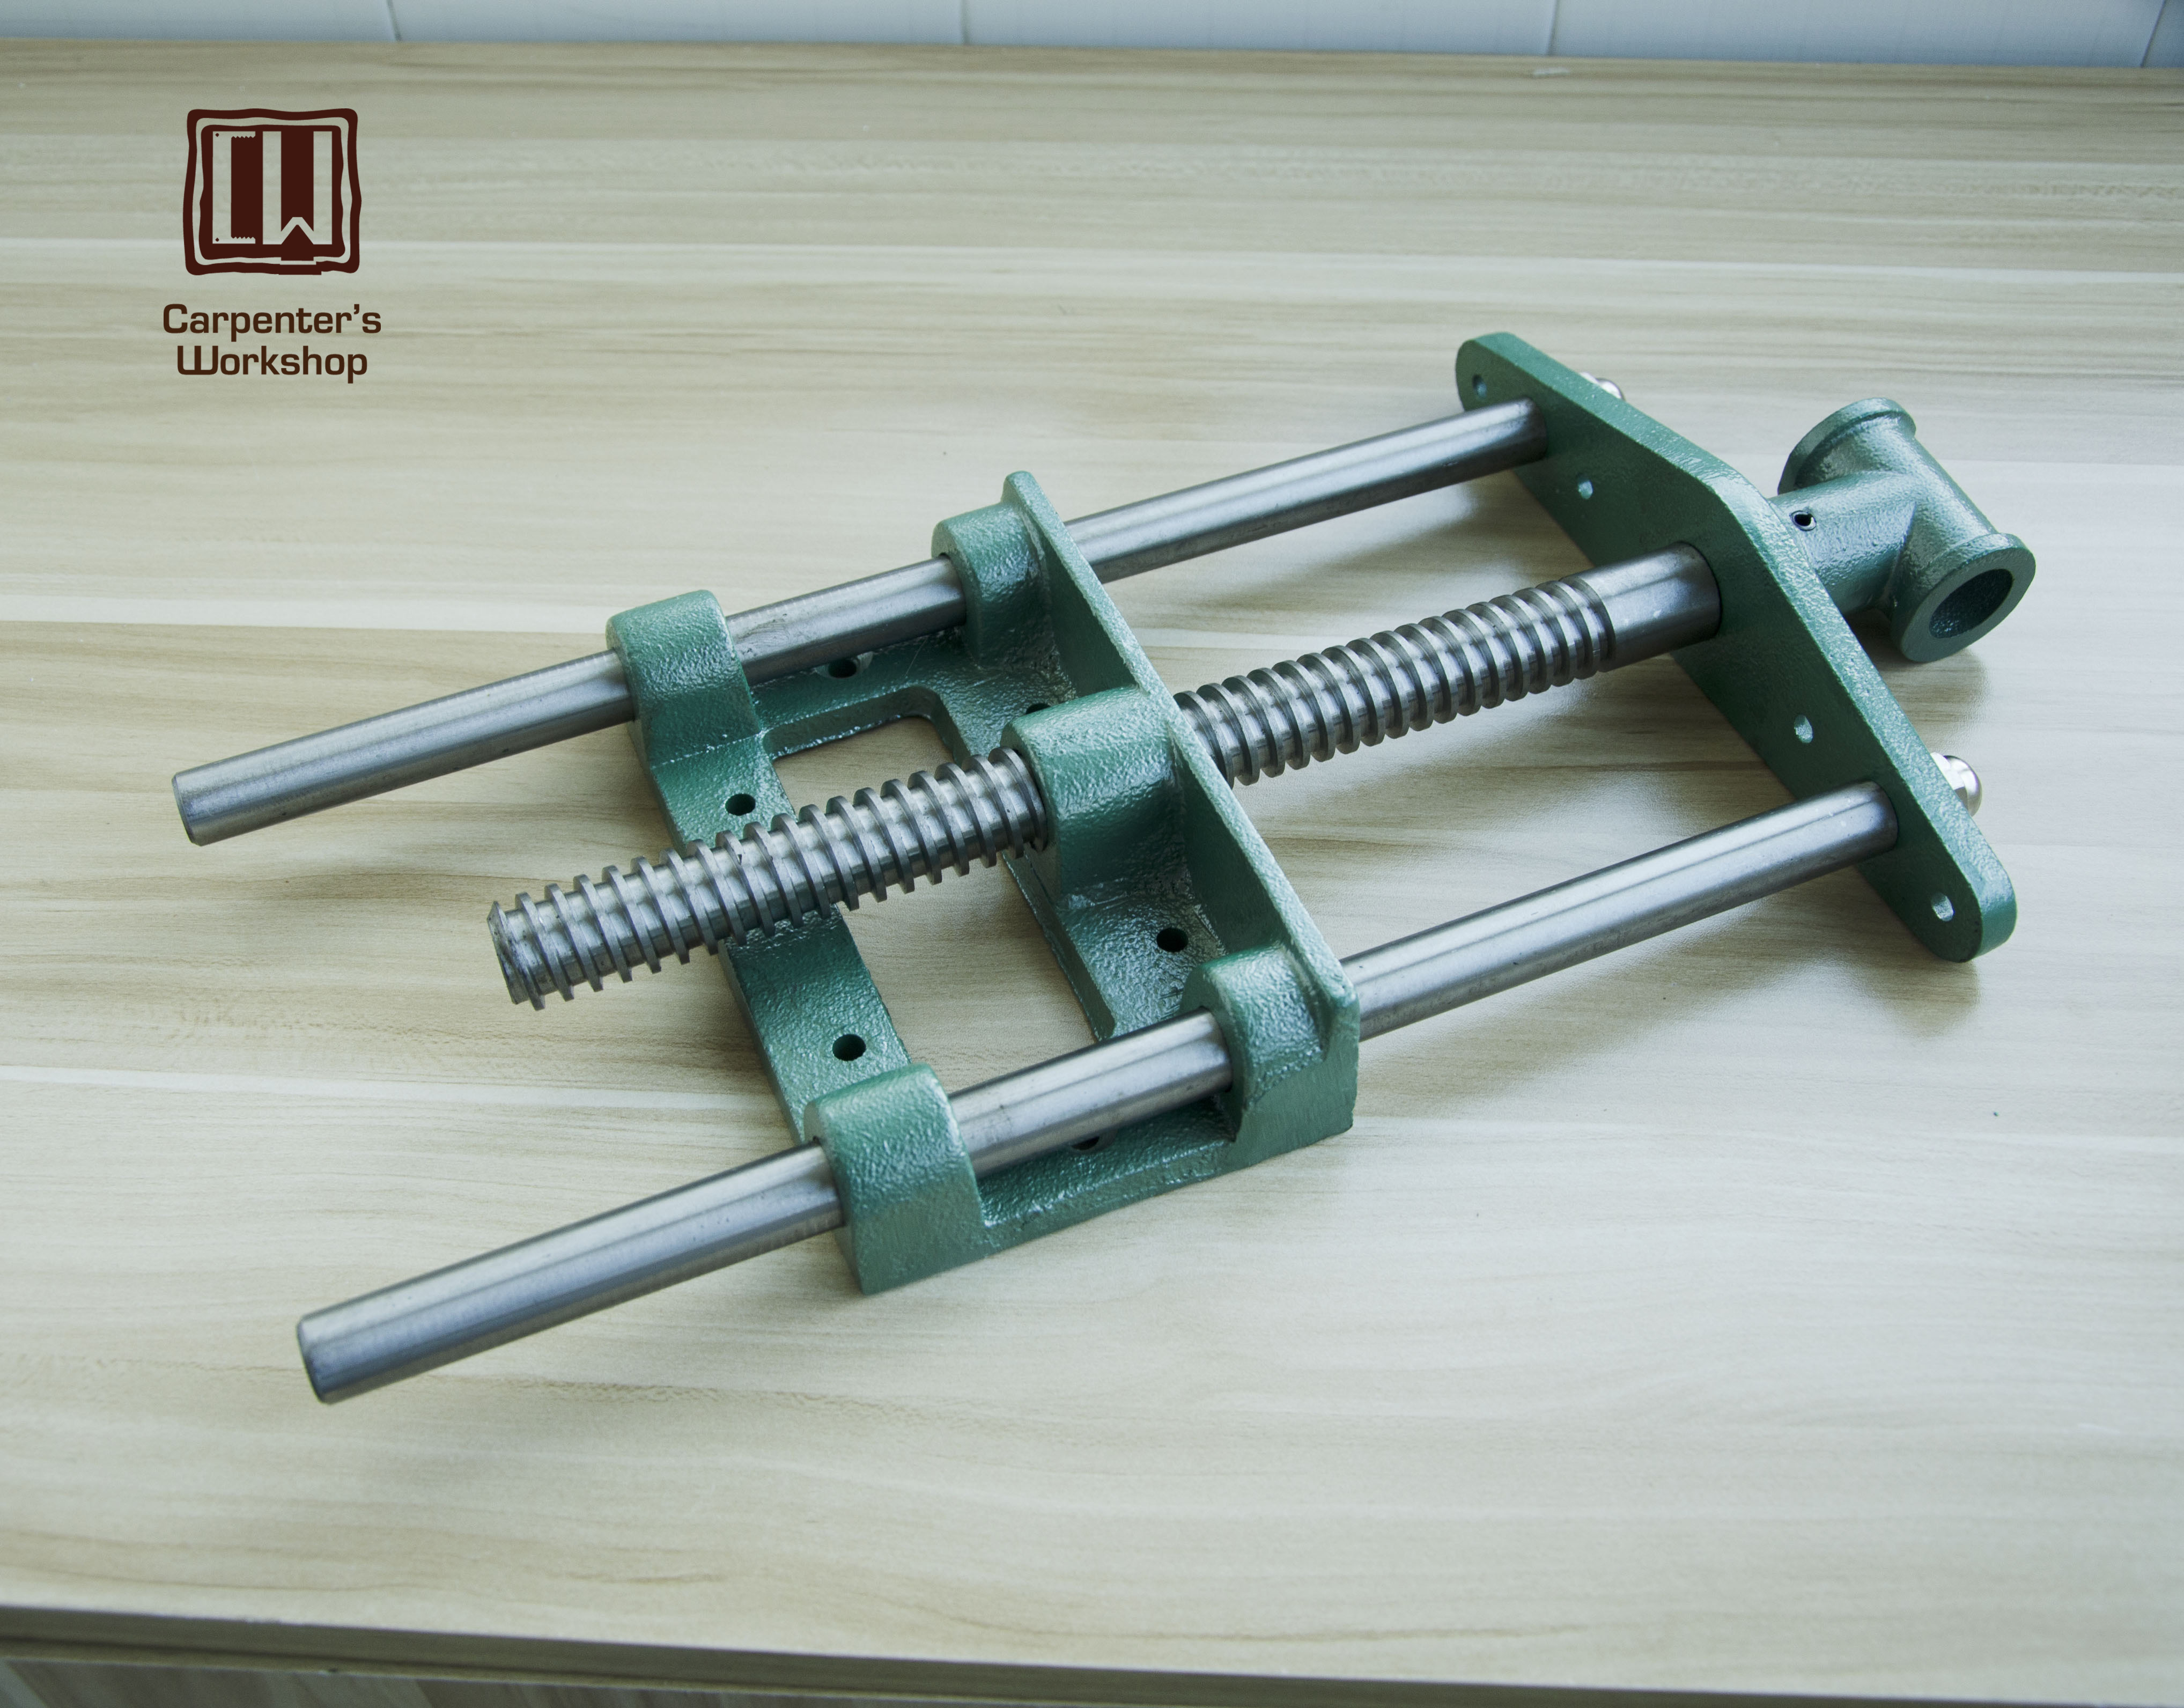 Guide bar woodworking clip 10 5 Jaw wide hand screw clamp woodworking vice